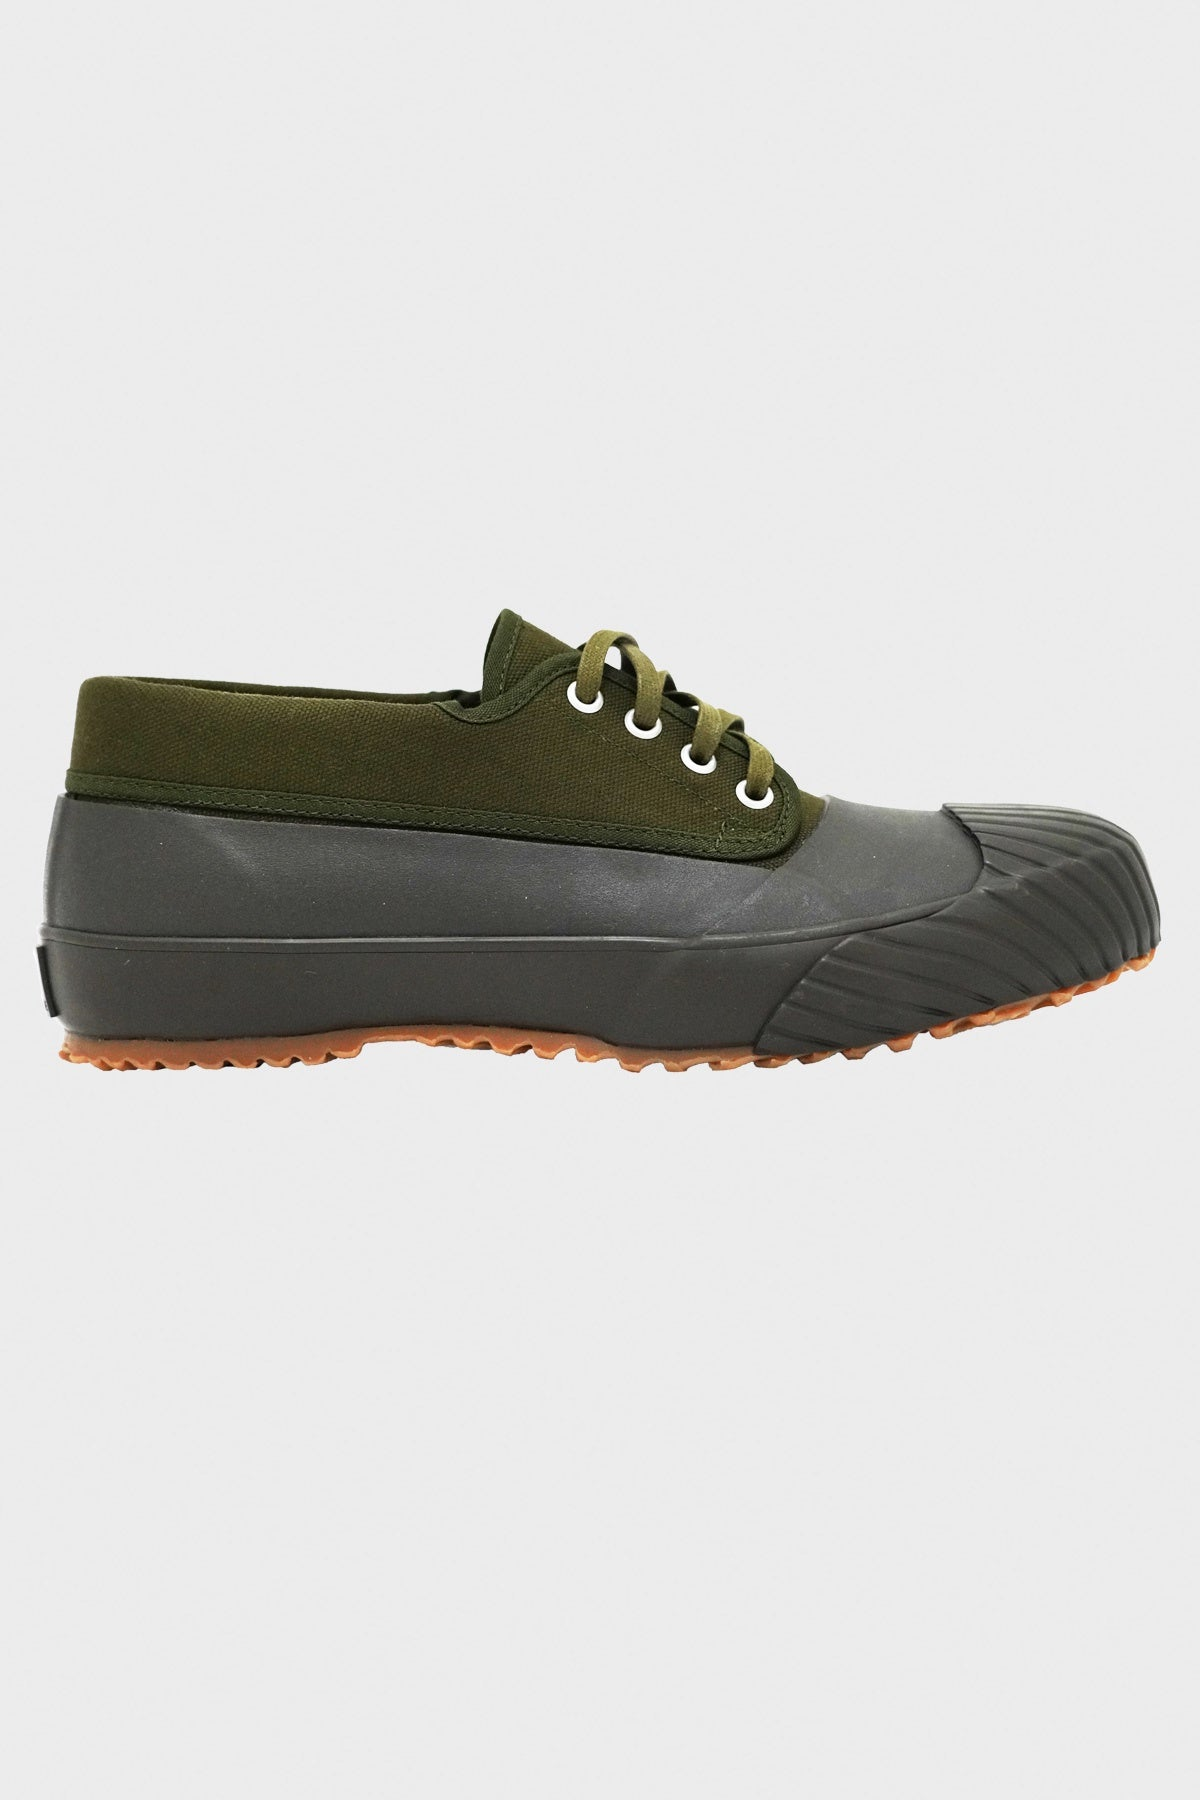 shoes like pottery Mudguard - Olive